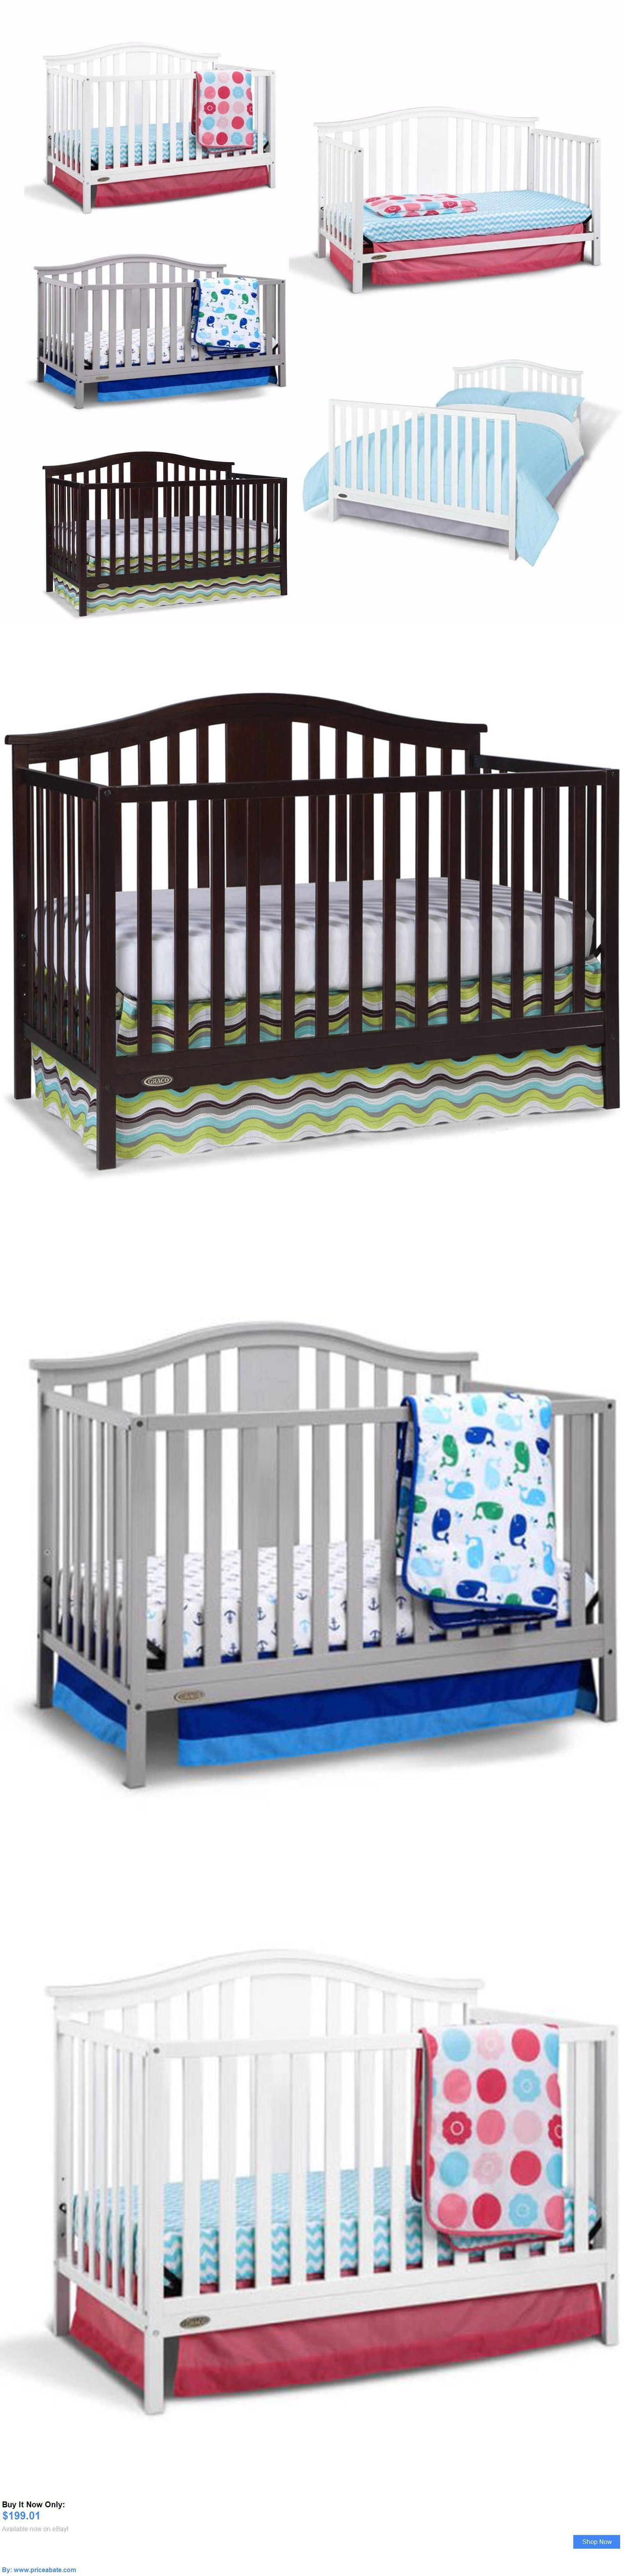 sarah cribs design table interior crib with designs convertible best graco attractive changing classic x